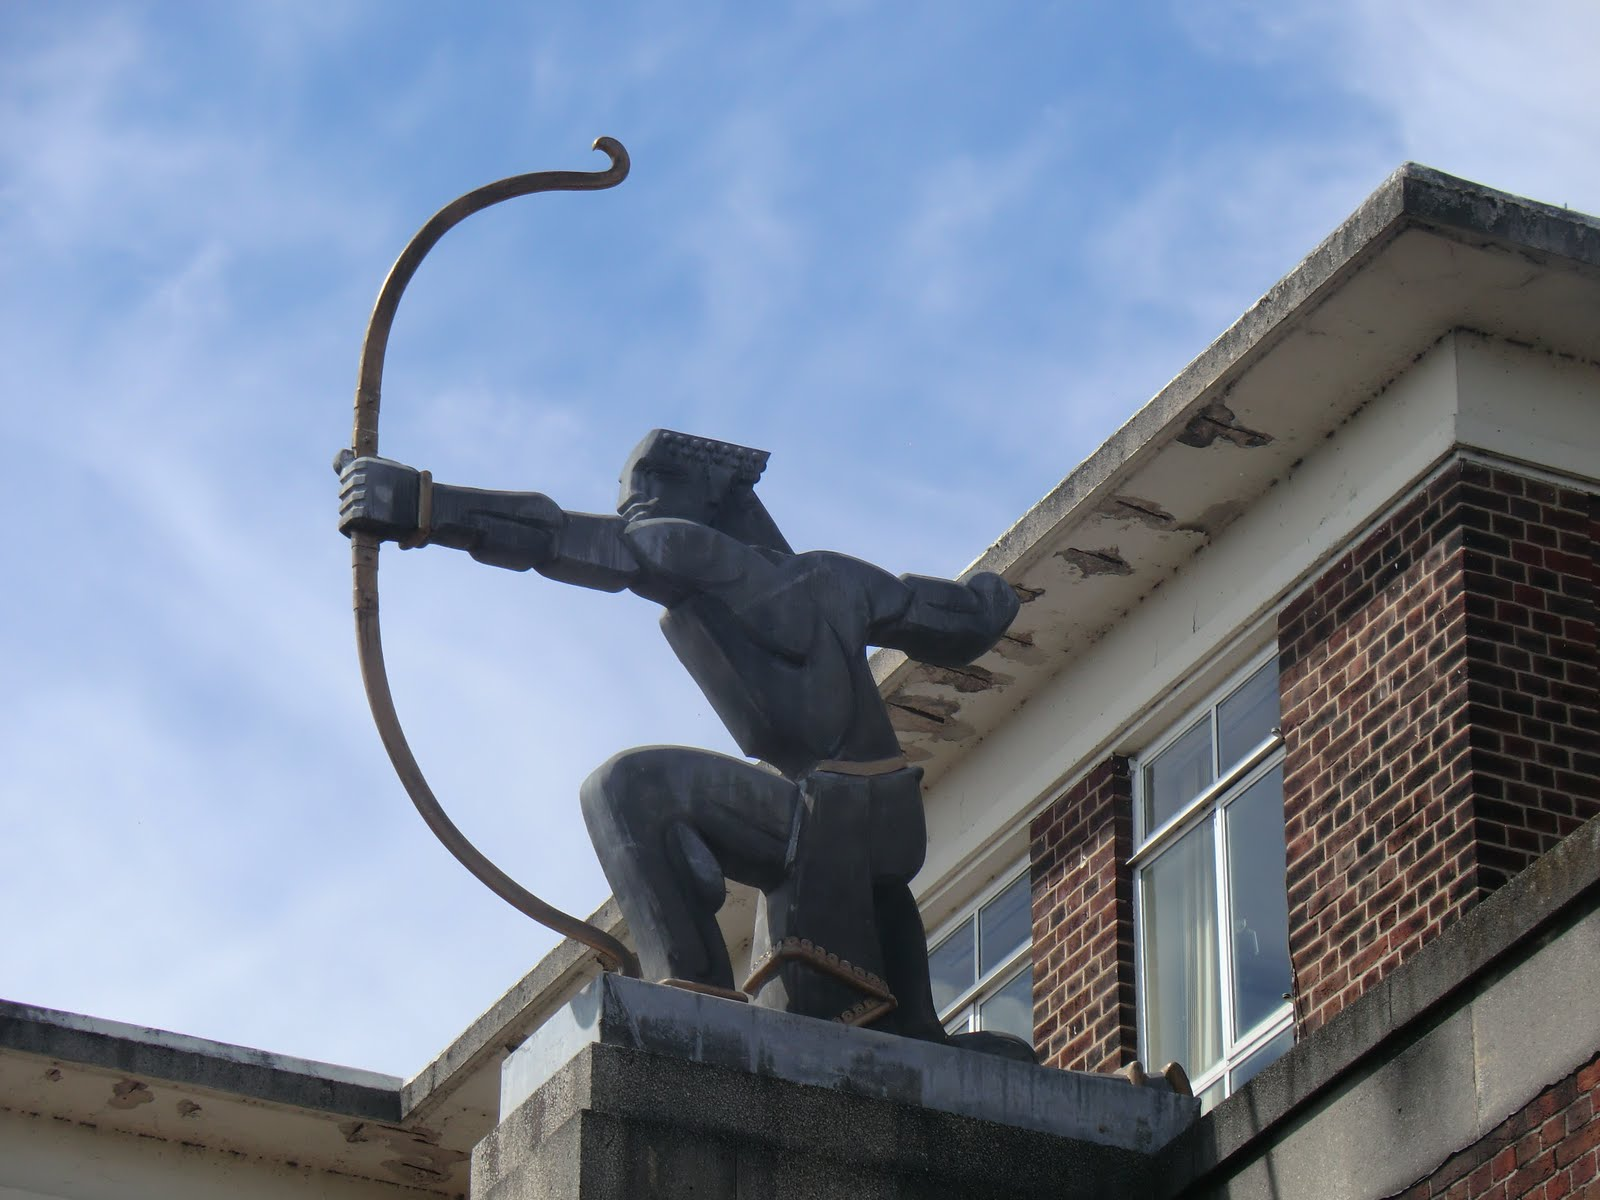 CIMG9550 The Archer, East Finchley station